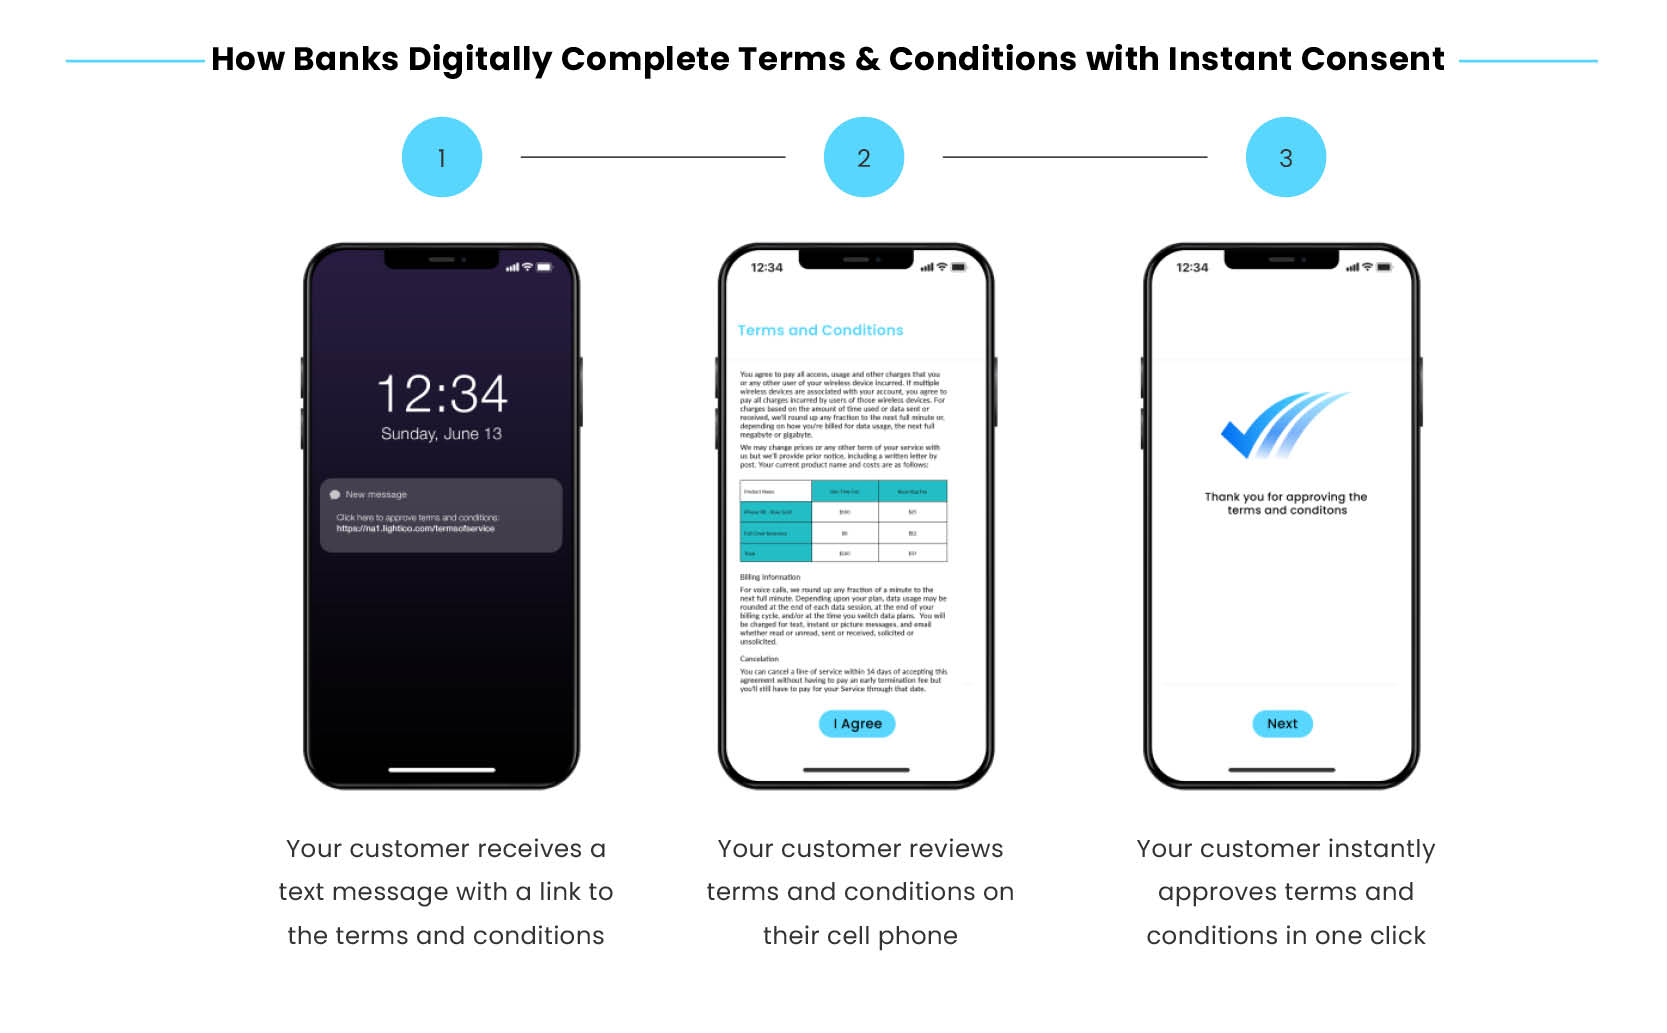 digital-completion-journey-banking-How Businesses Can Capture Instant Consent of Terms & Conditions